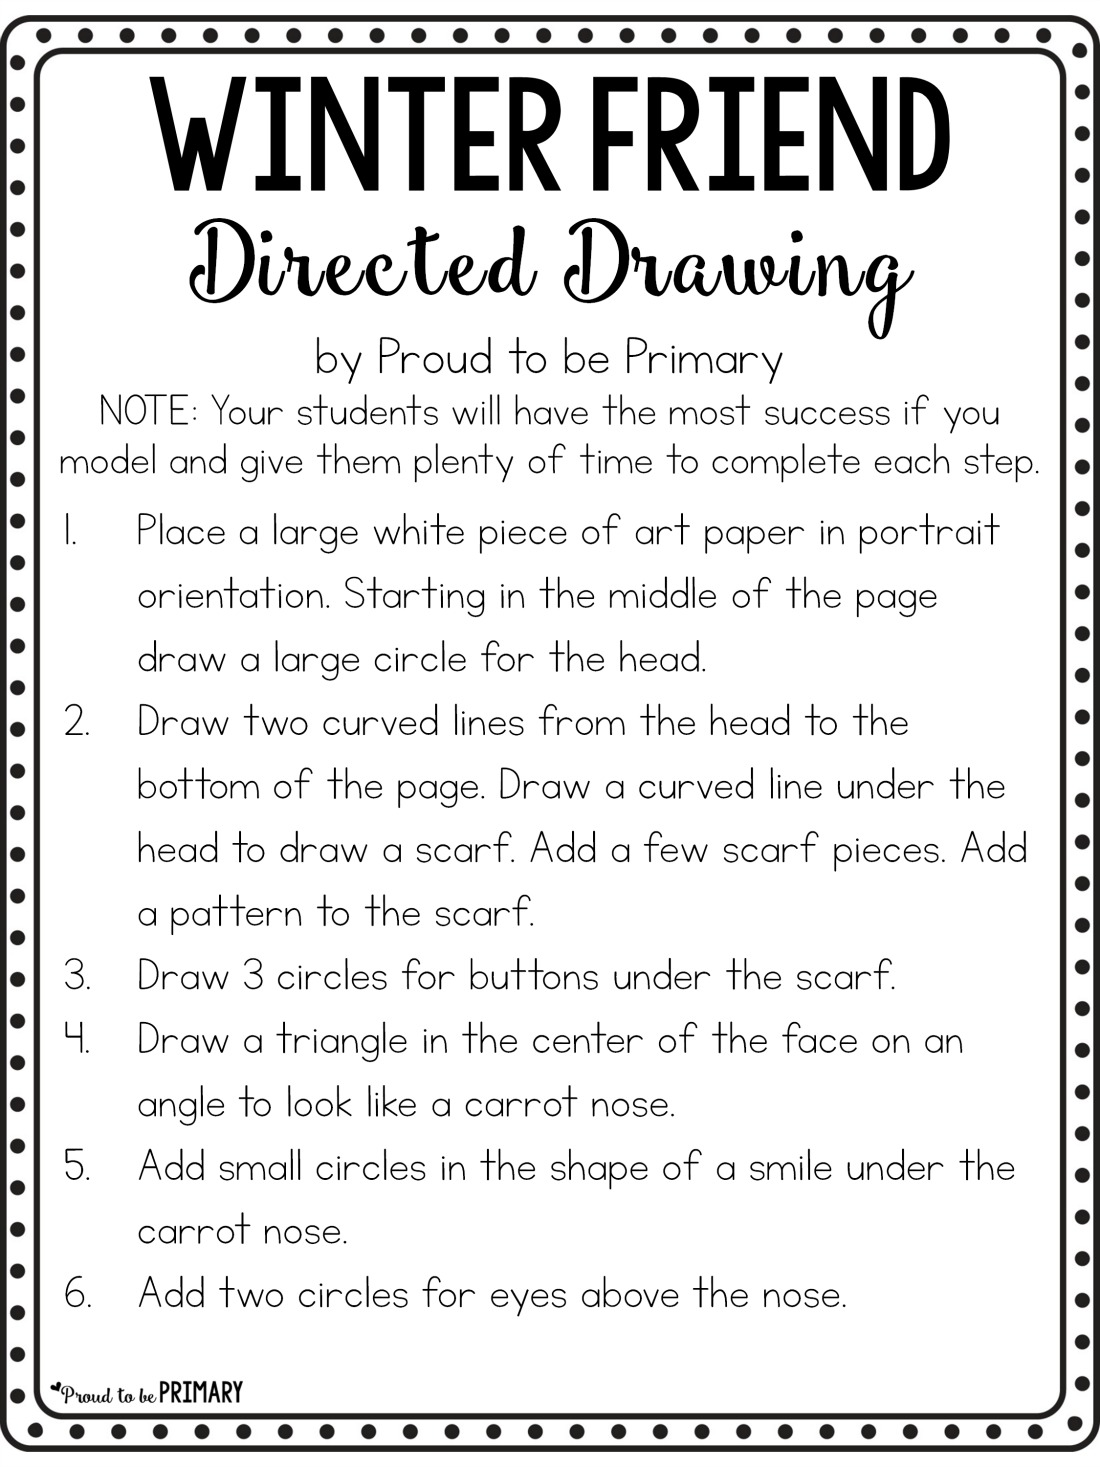 snowman drawing art activity - free printable instructions